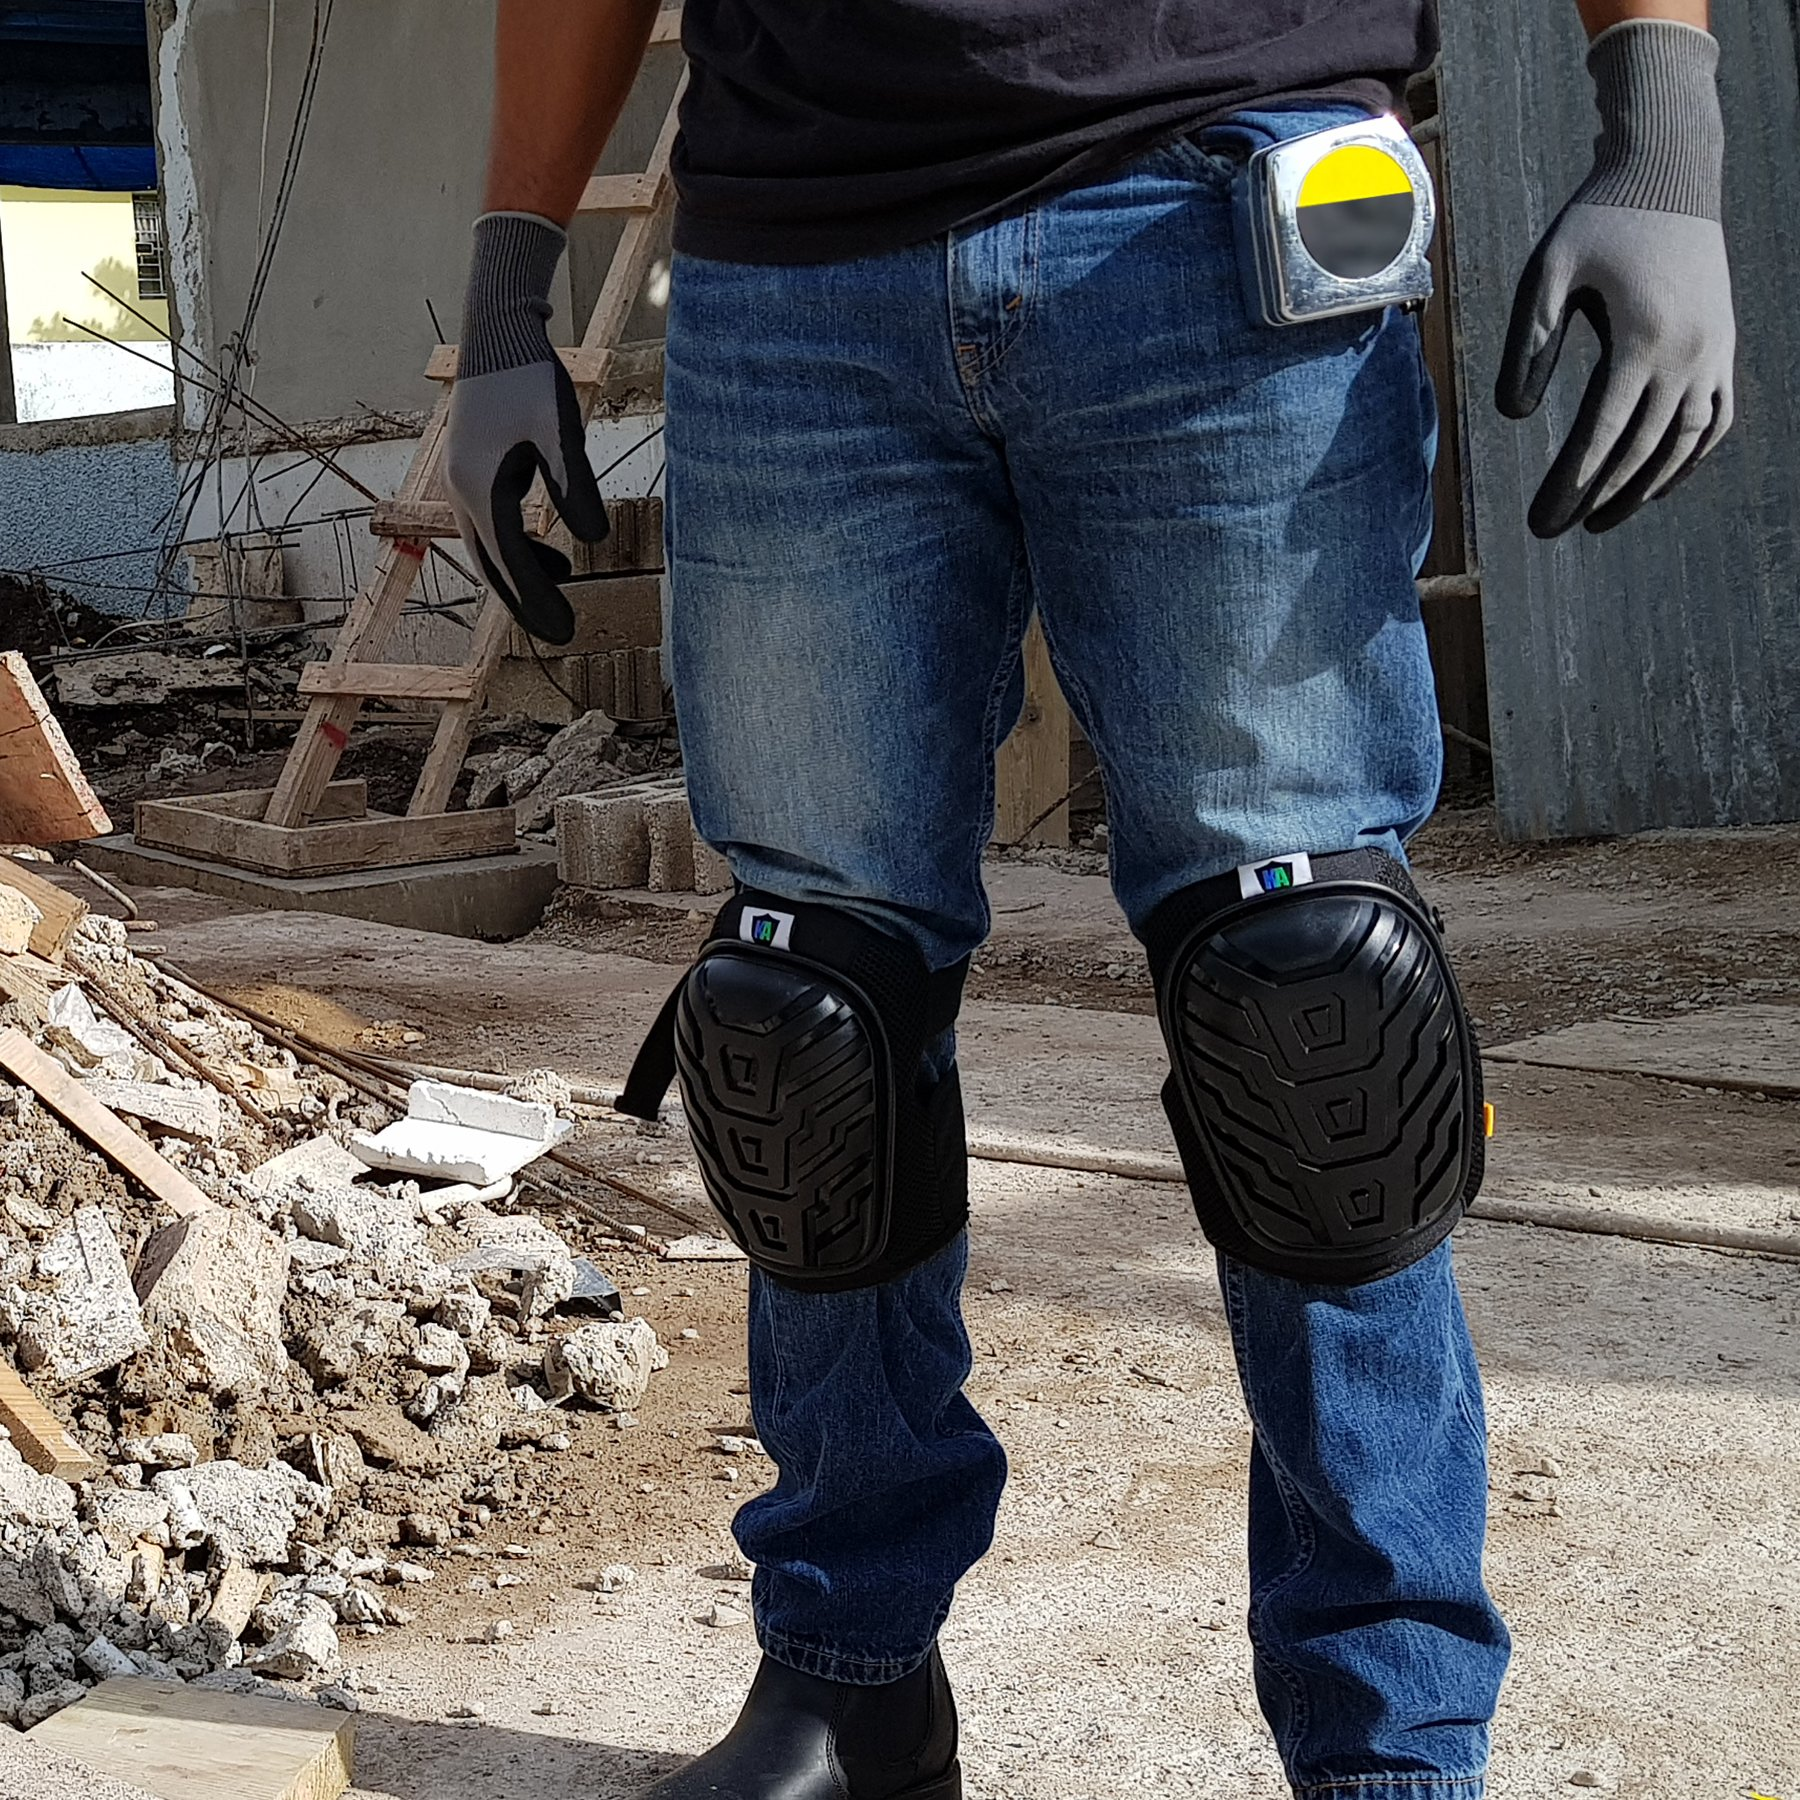 Knee Armor Heavy Duty Professional Knee Pads with Gel Cushions, EVA Foam, Adjustable Straps, Bonus Protective Gloves. Superb Knee and Hand Protection. Perfect for Construction, Gardening and More by Knee Armor (Image #5)